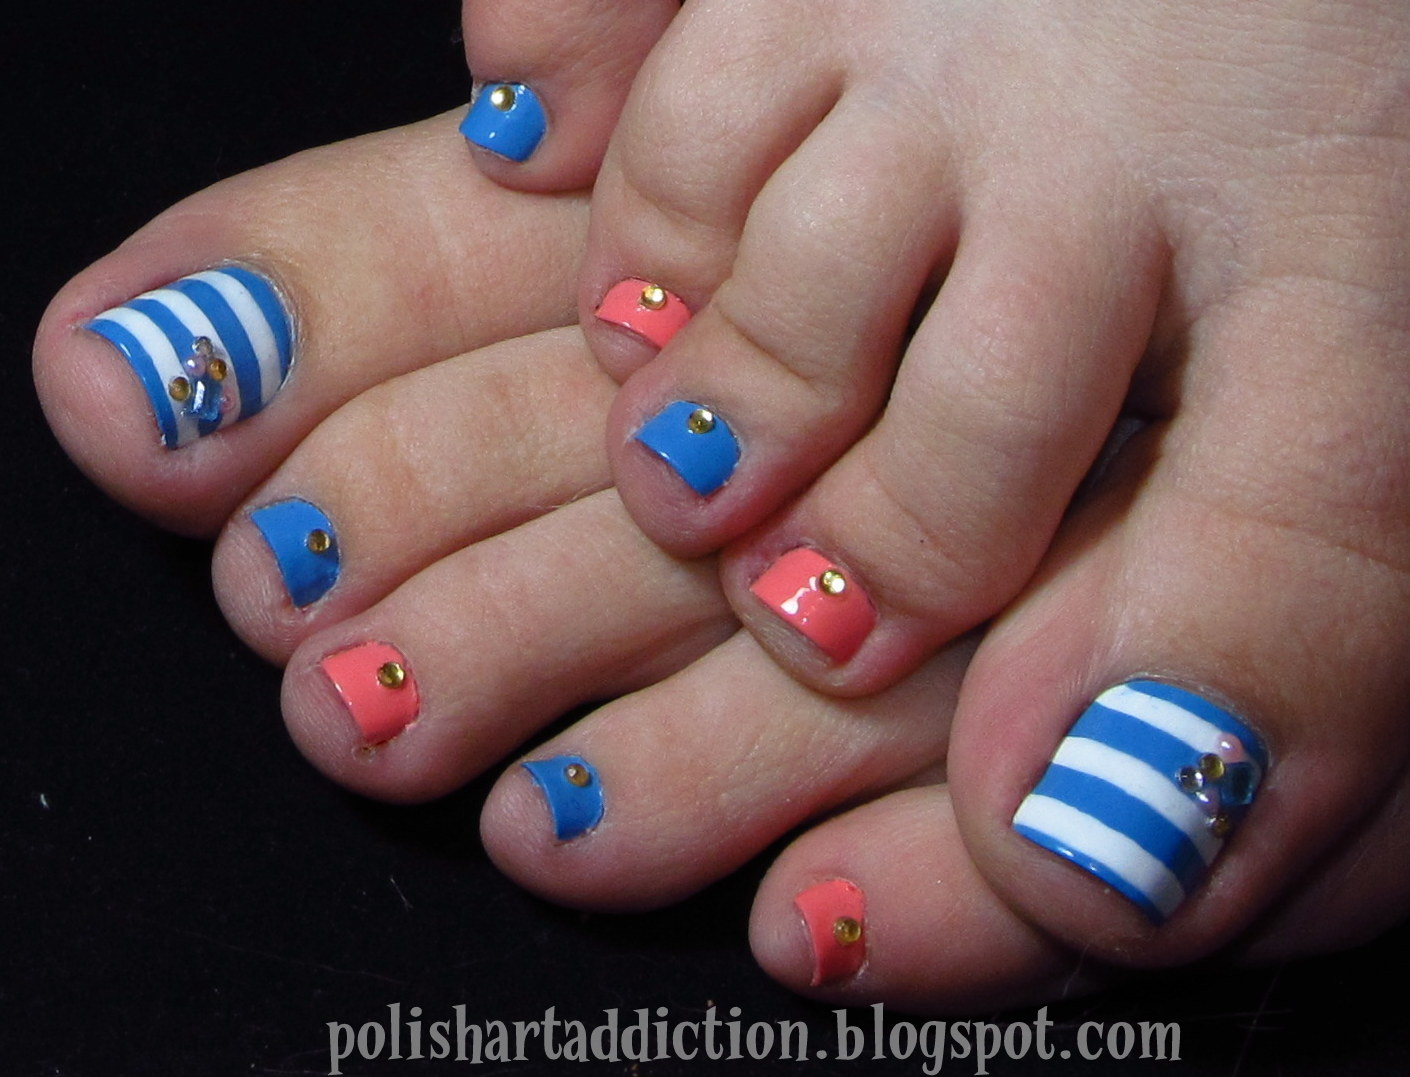 14 Toe Nail Toe Nail Designs Blue With Fireworks Images 4th Of